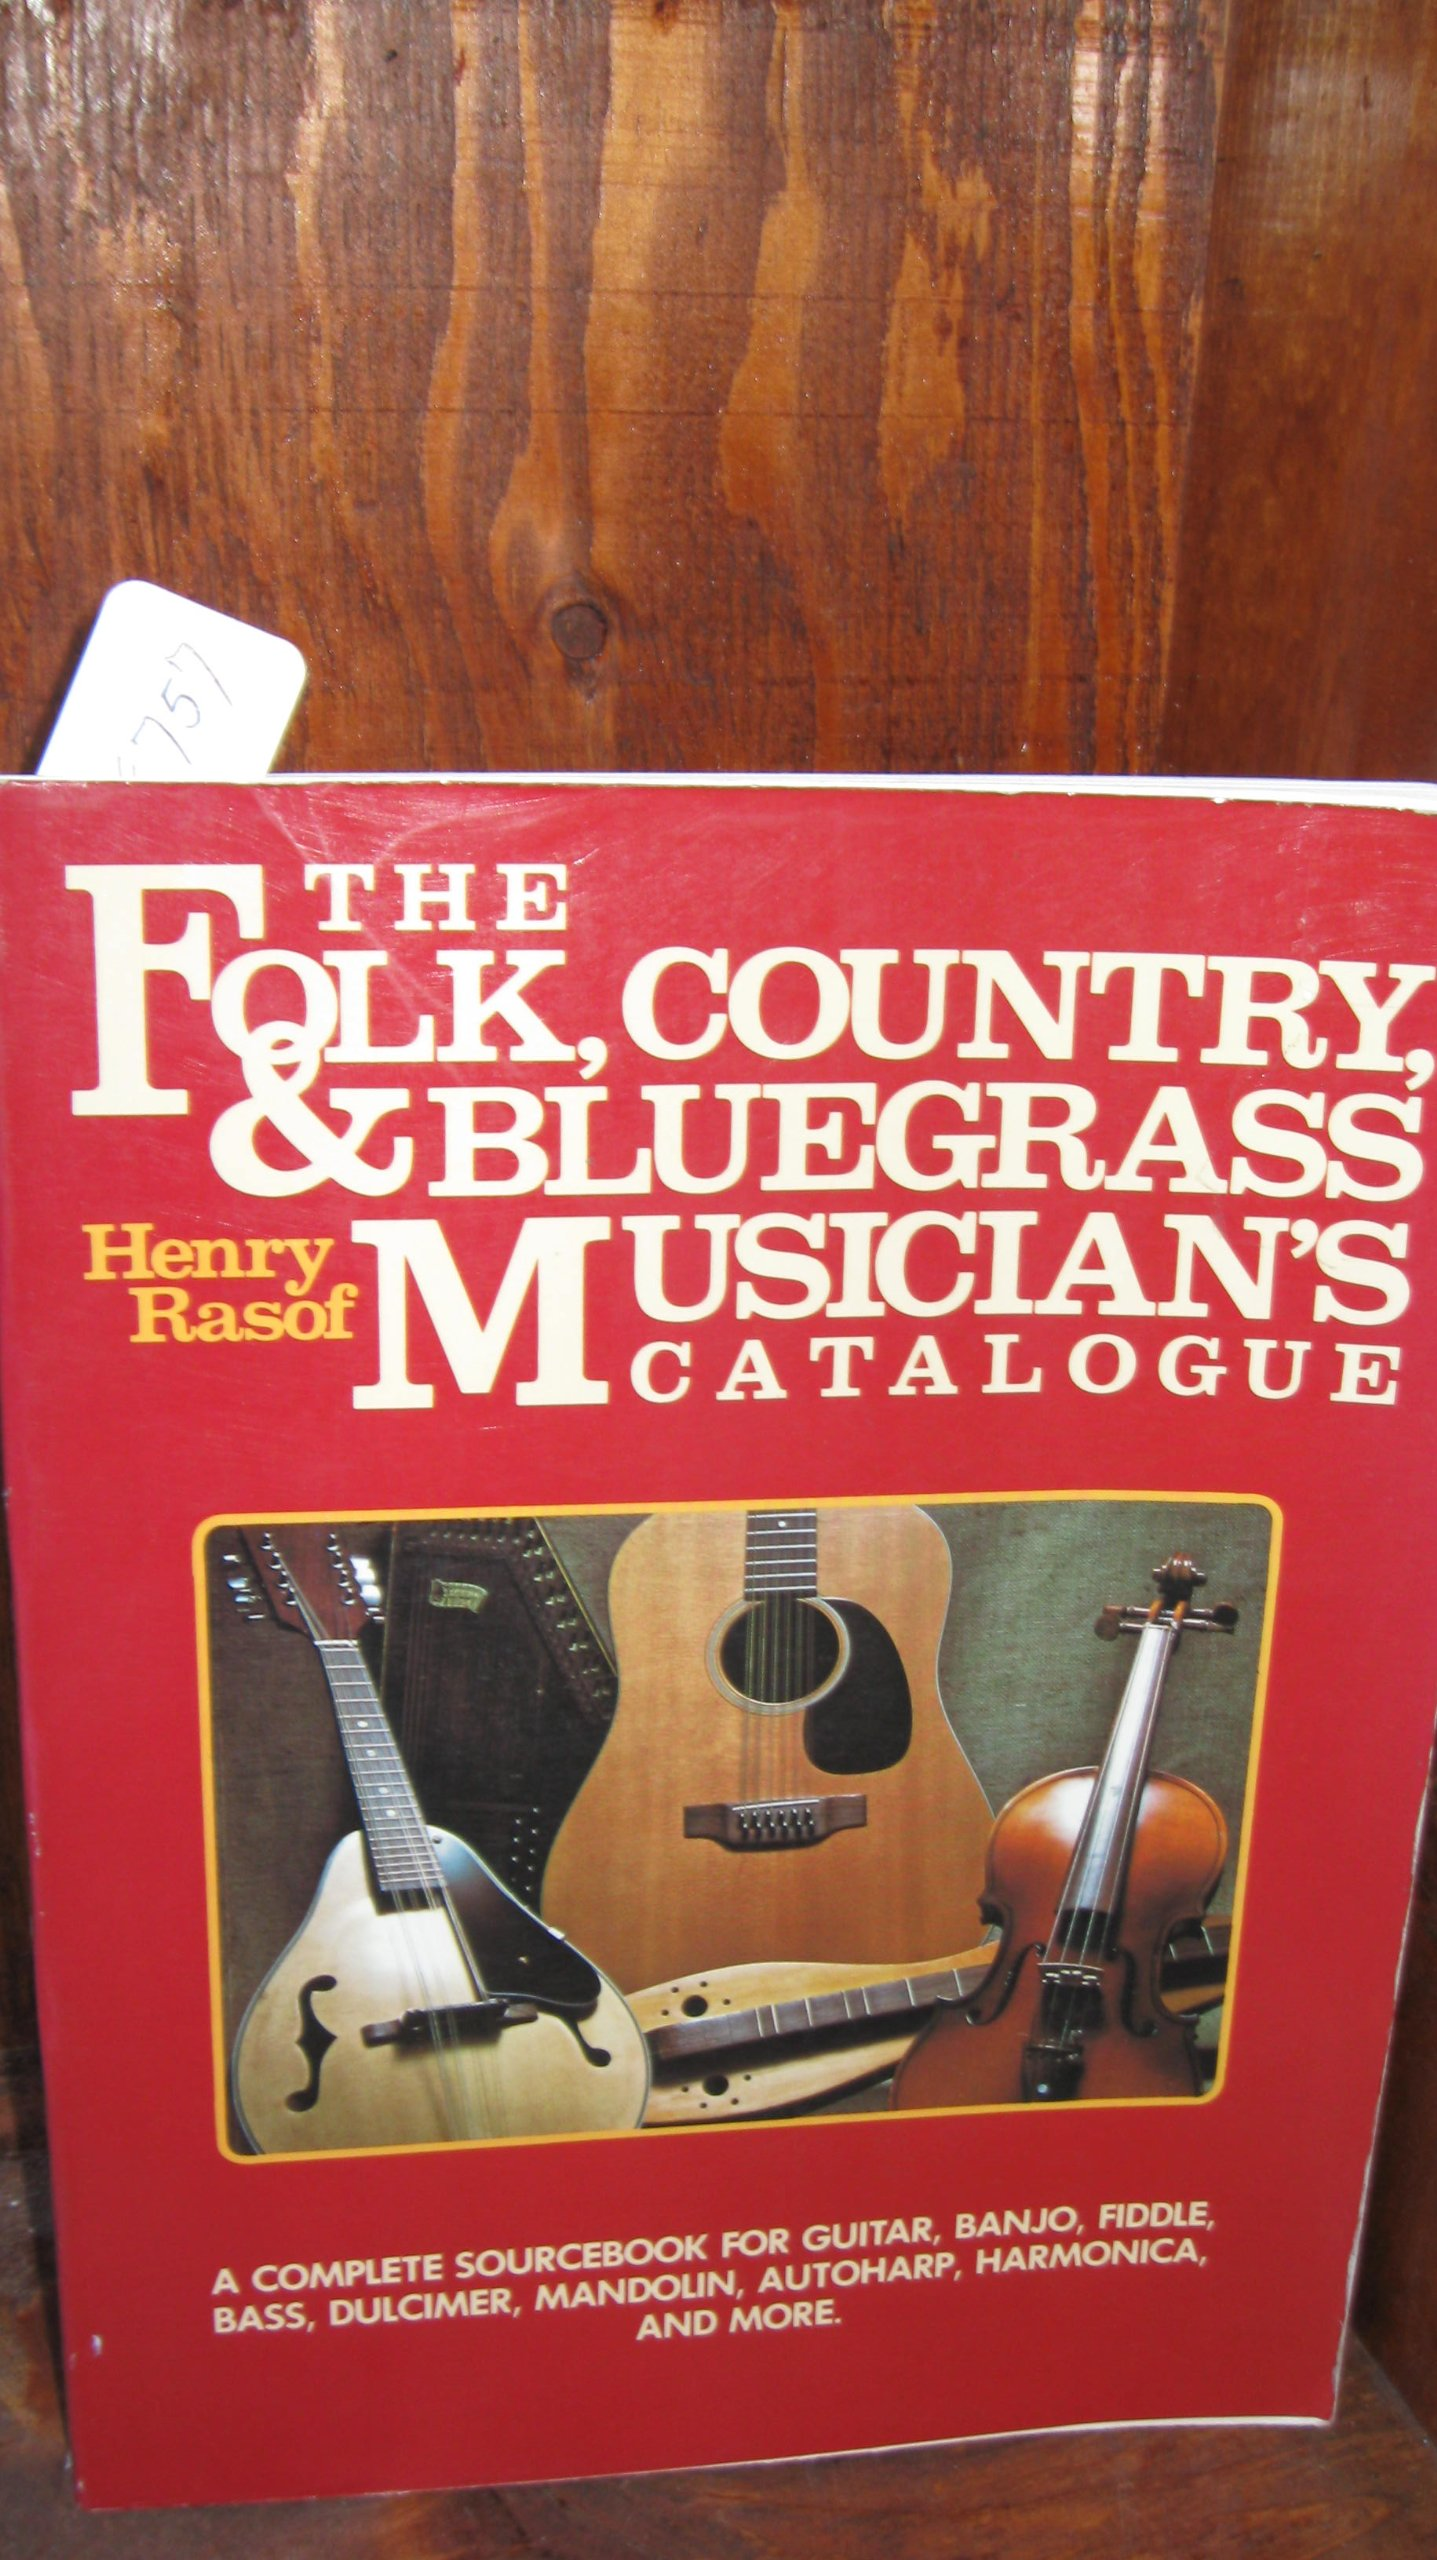 The Folk, Country and Bluegrass Musician's Catalogue: A Complete Sourcebook for Guitar, Banjo, Fiddle, Bass, Dulcimer, Mandolin, Autoharp, Harmonica,